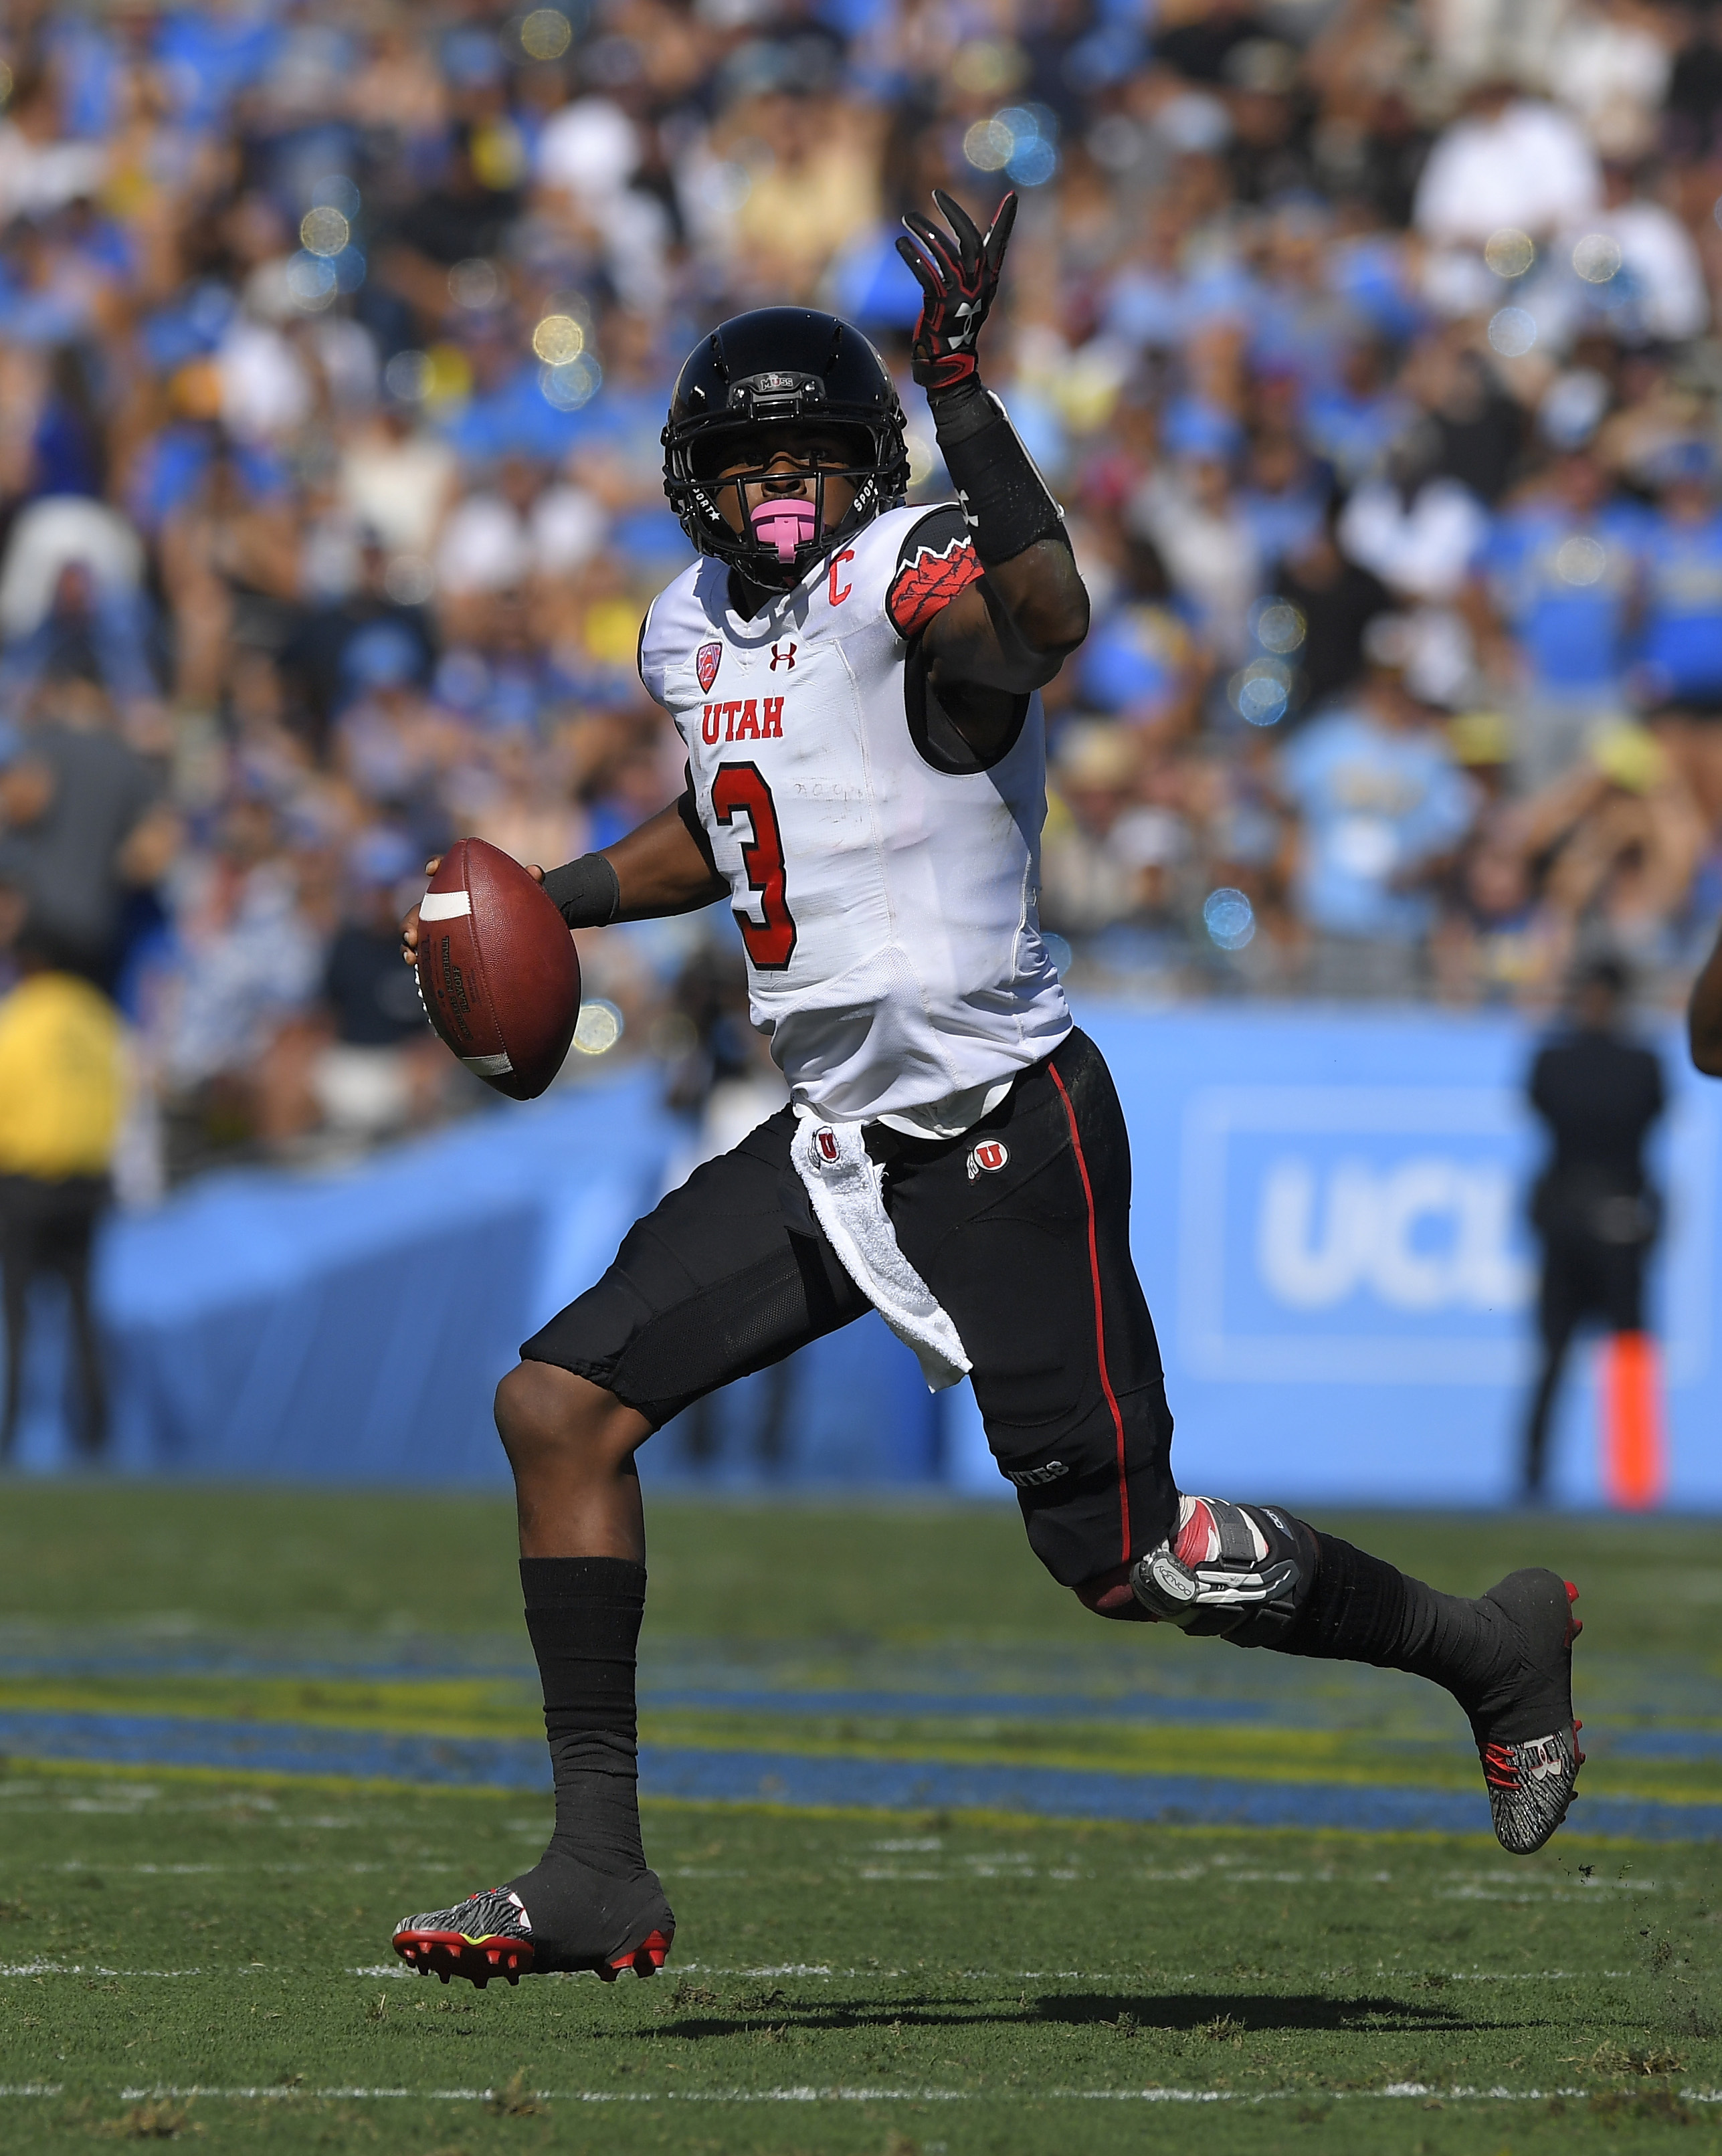 Utah quarterback Troy Williams gets set to pass during the first half of an NCAA college football game against UCLA, Saturday, Oct. 22, 2016, in Pasadena, Calif. (AP Photo/Mark J. Terrill)